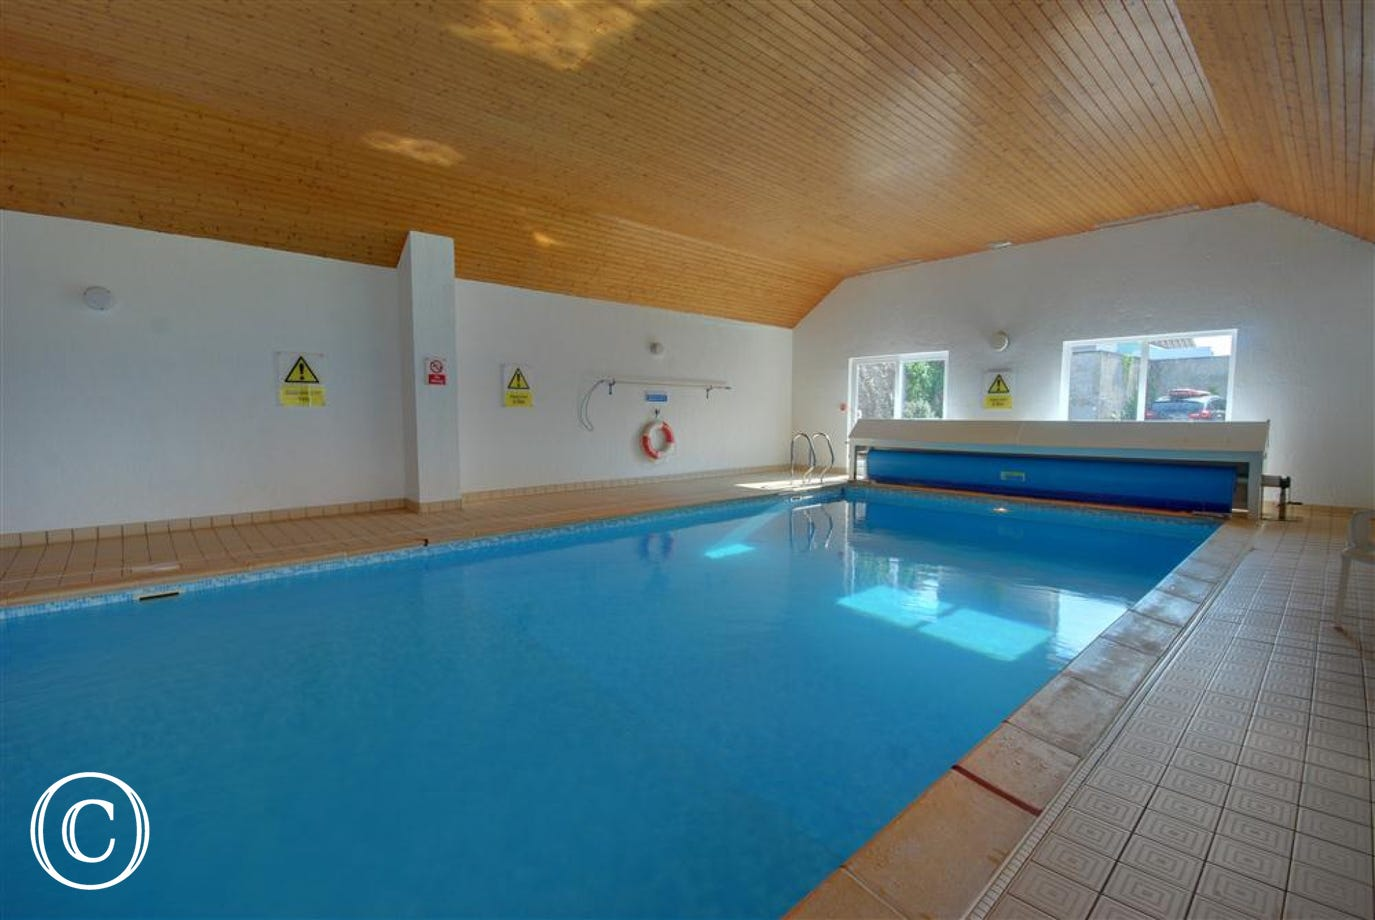 A good-sized heated indoor swimming pool for all the family